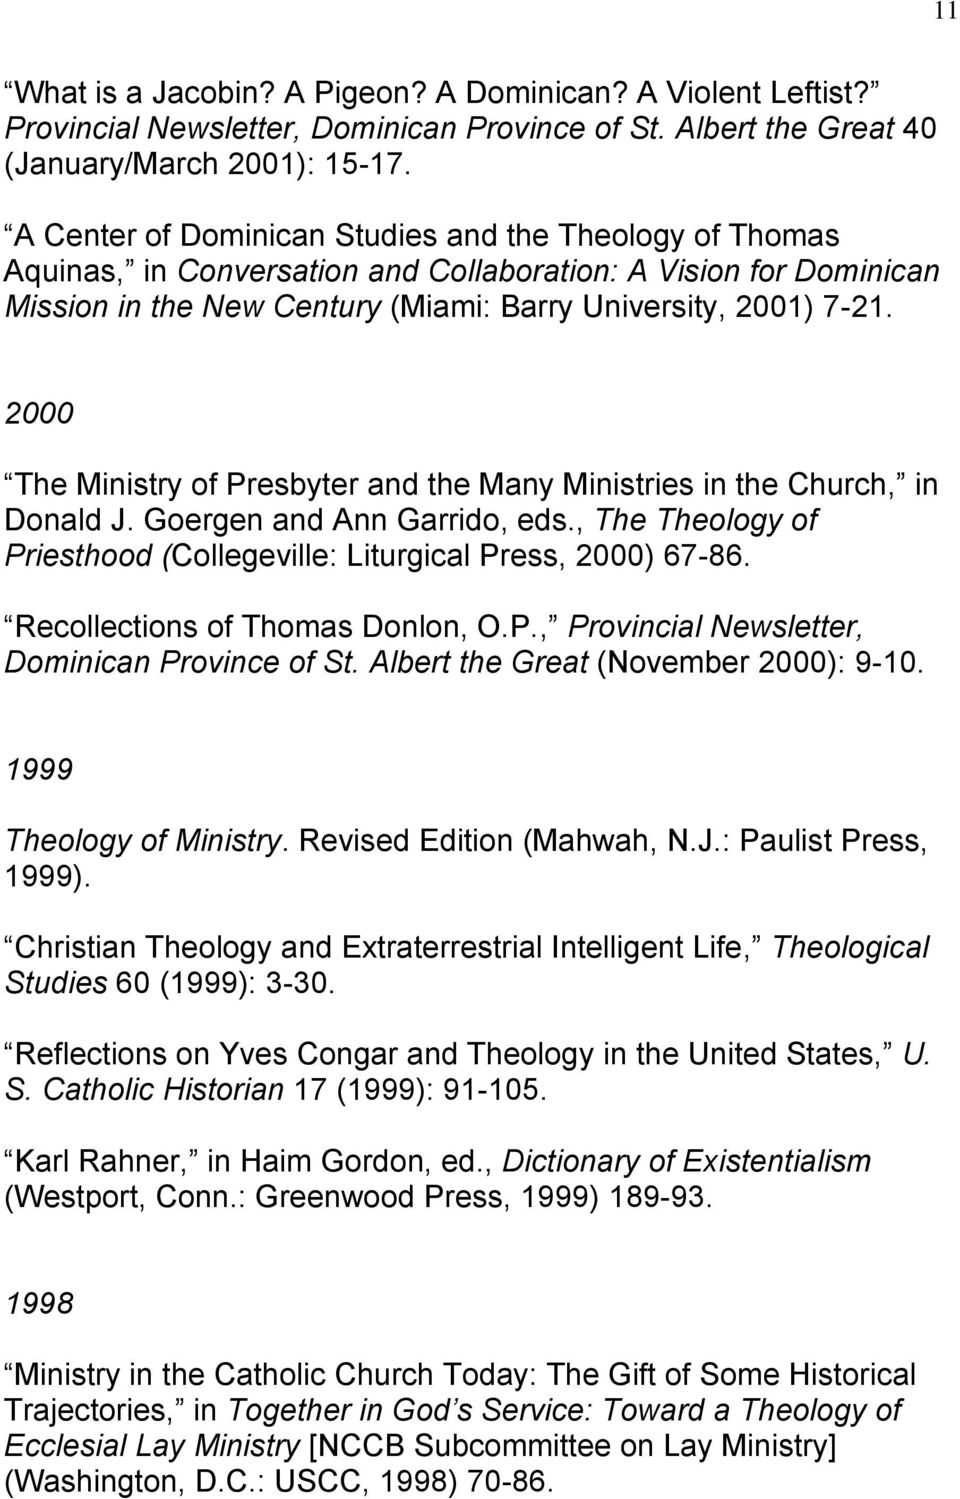 2000 The Ministry of Presbyter and the Many Ministries in the Church, in Donald J. Goergen and Ann Garrido, eds., The Theology of Priesthood (Collegeville: Liturgical Press, 2000) 67-86.